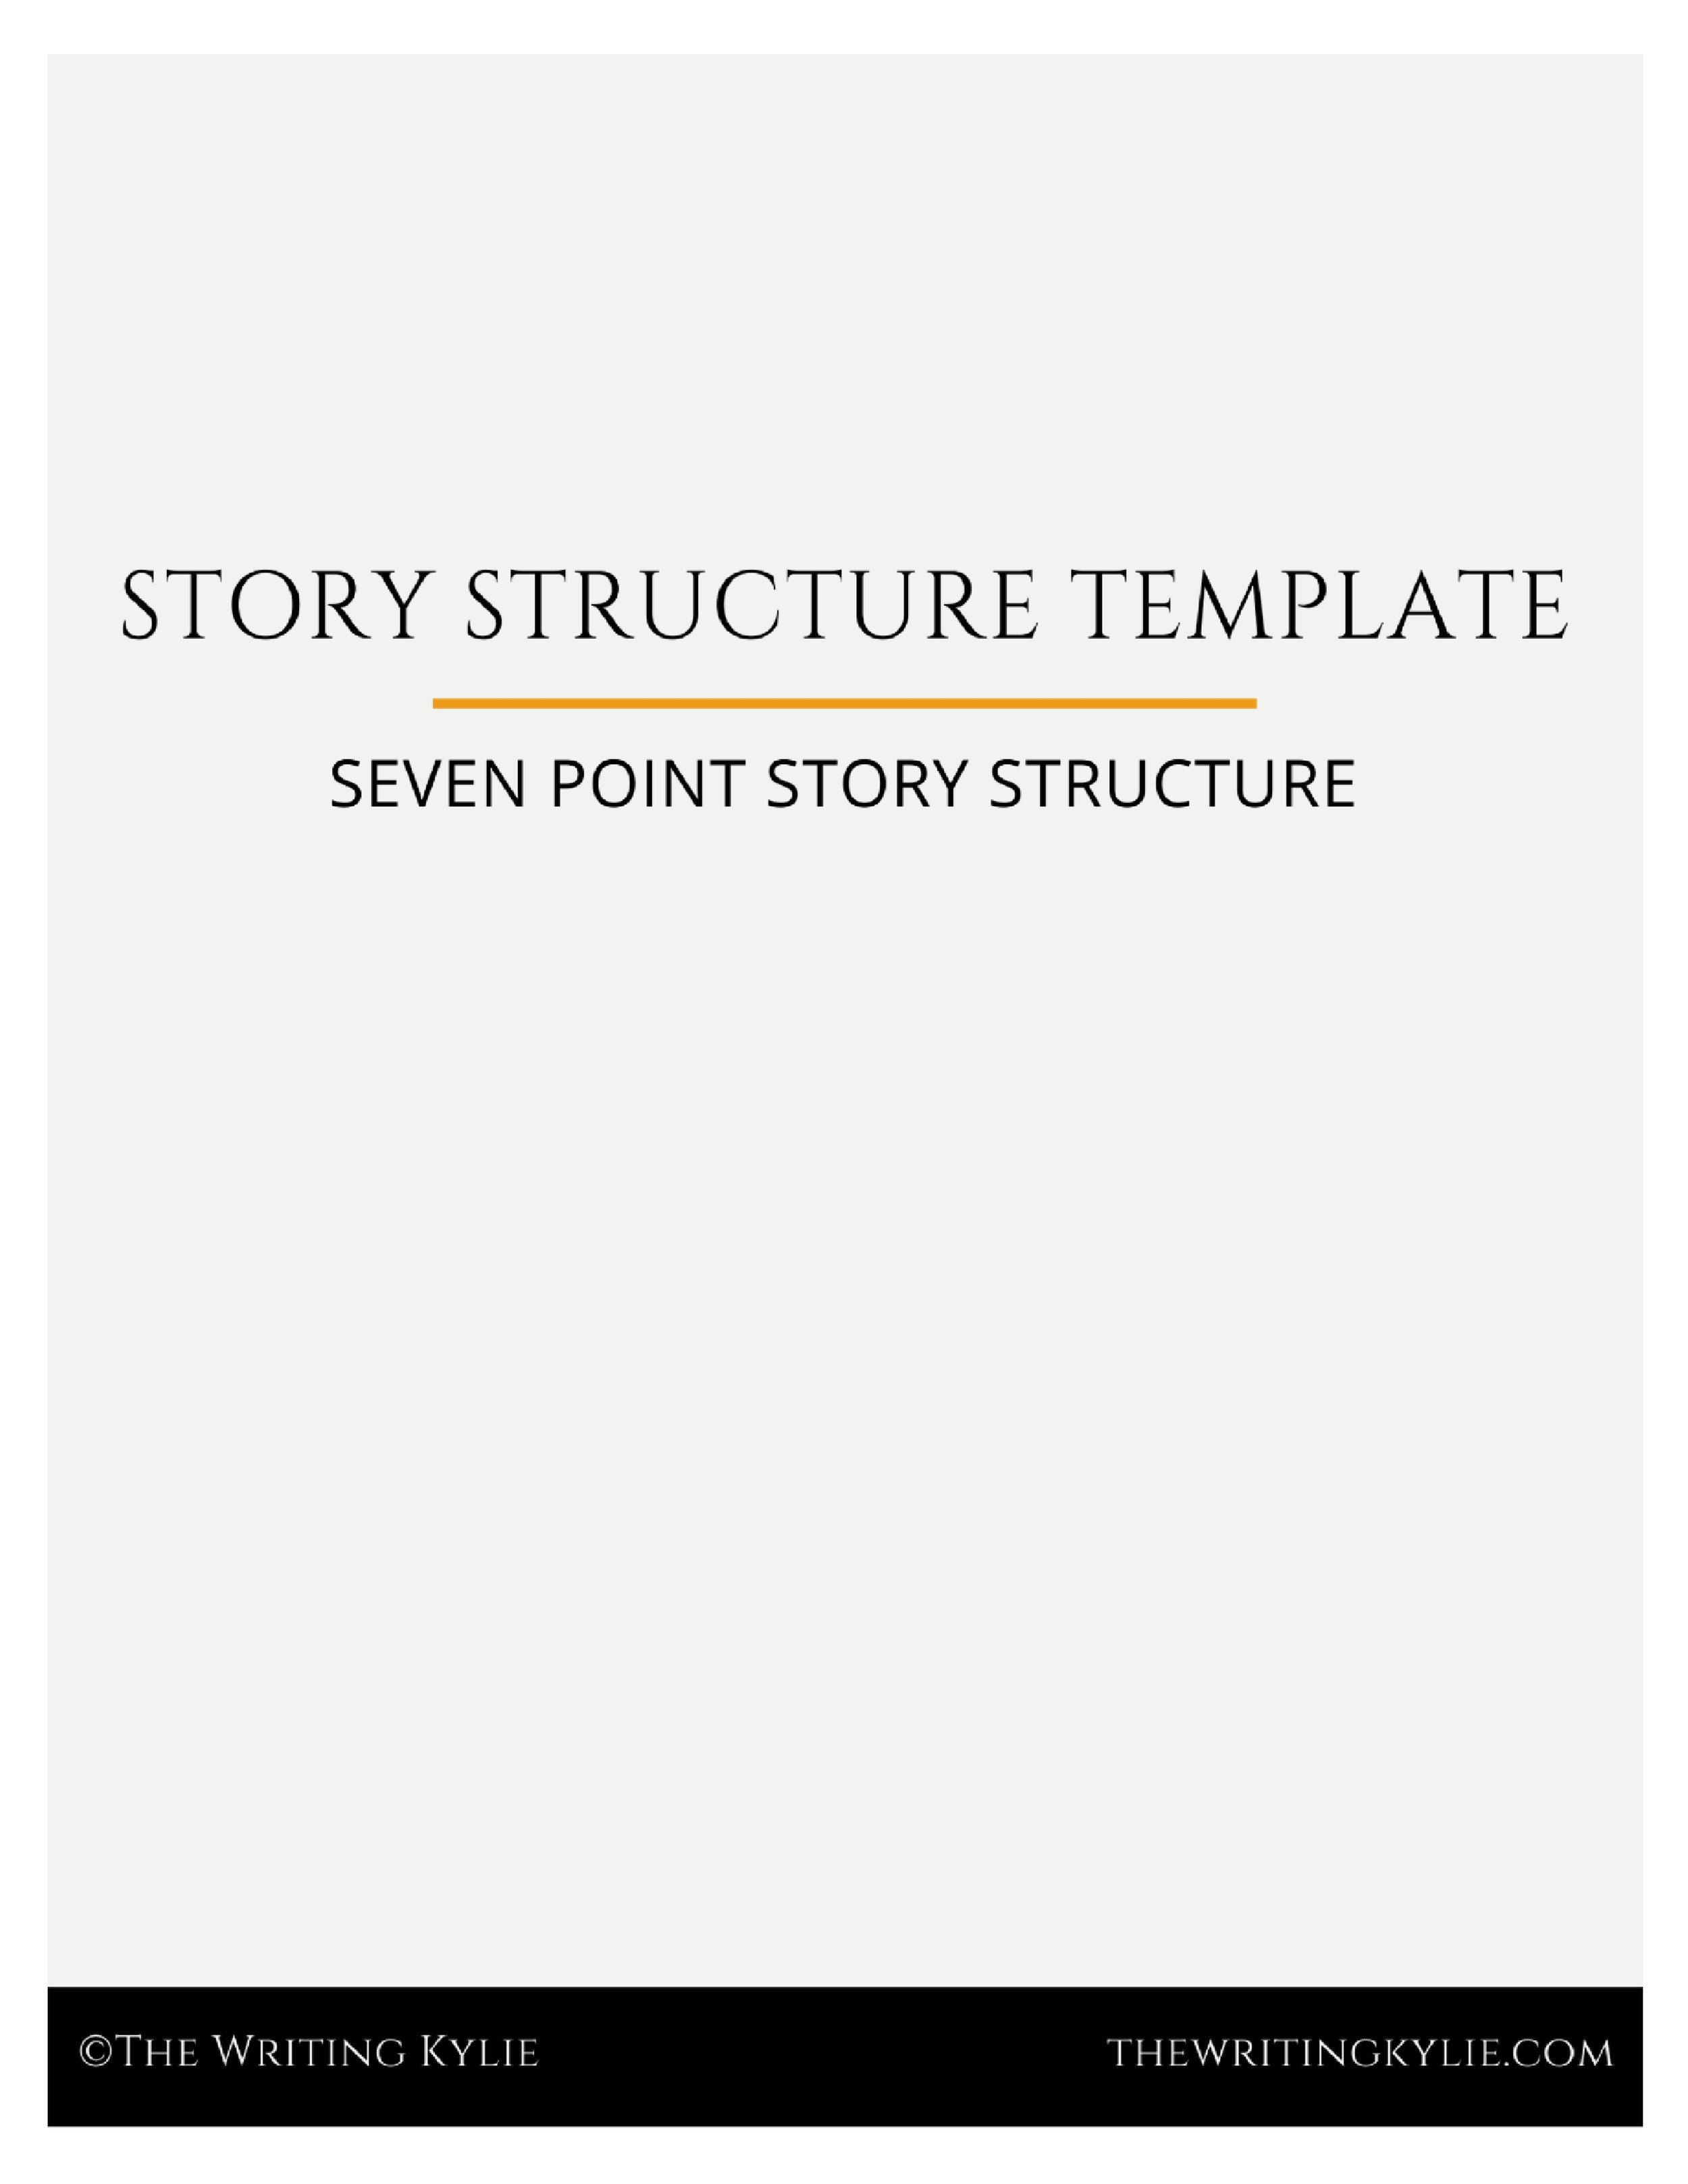 Download the  FREE Seven Point Story Structure Template